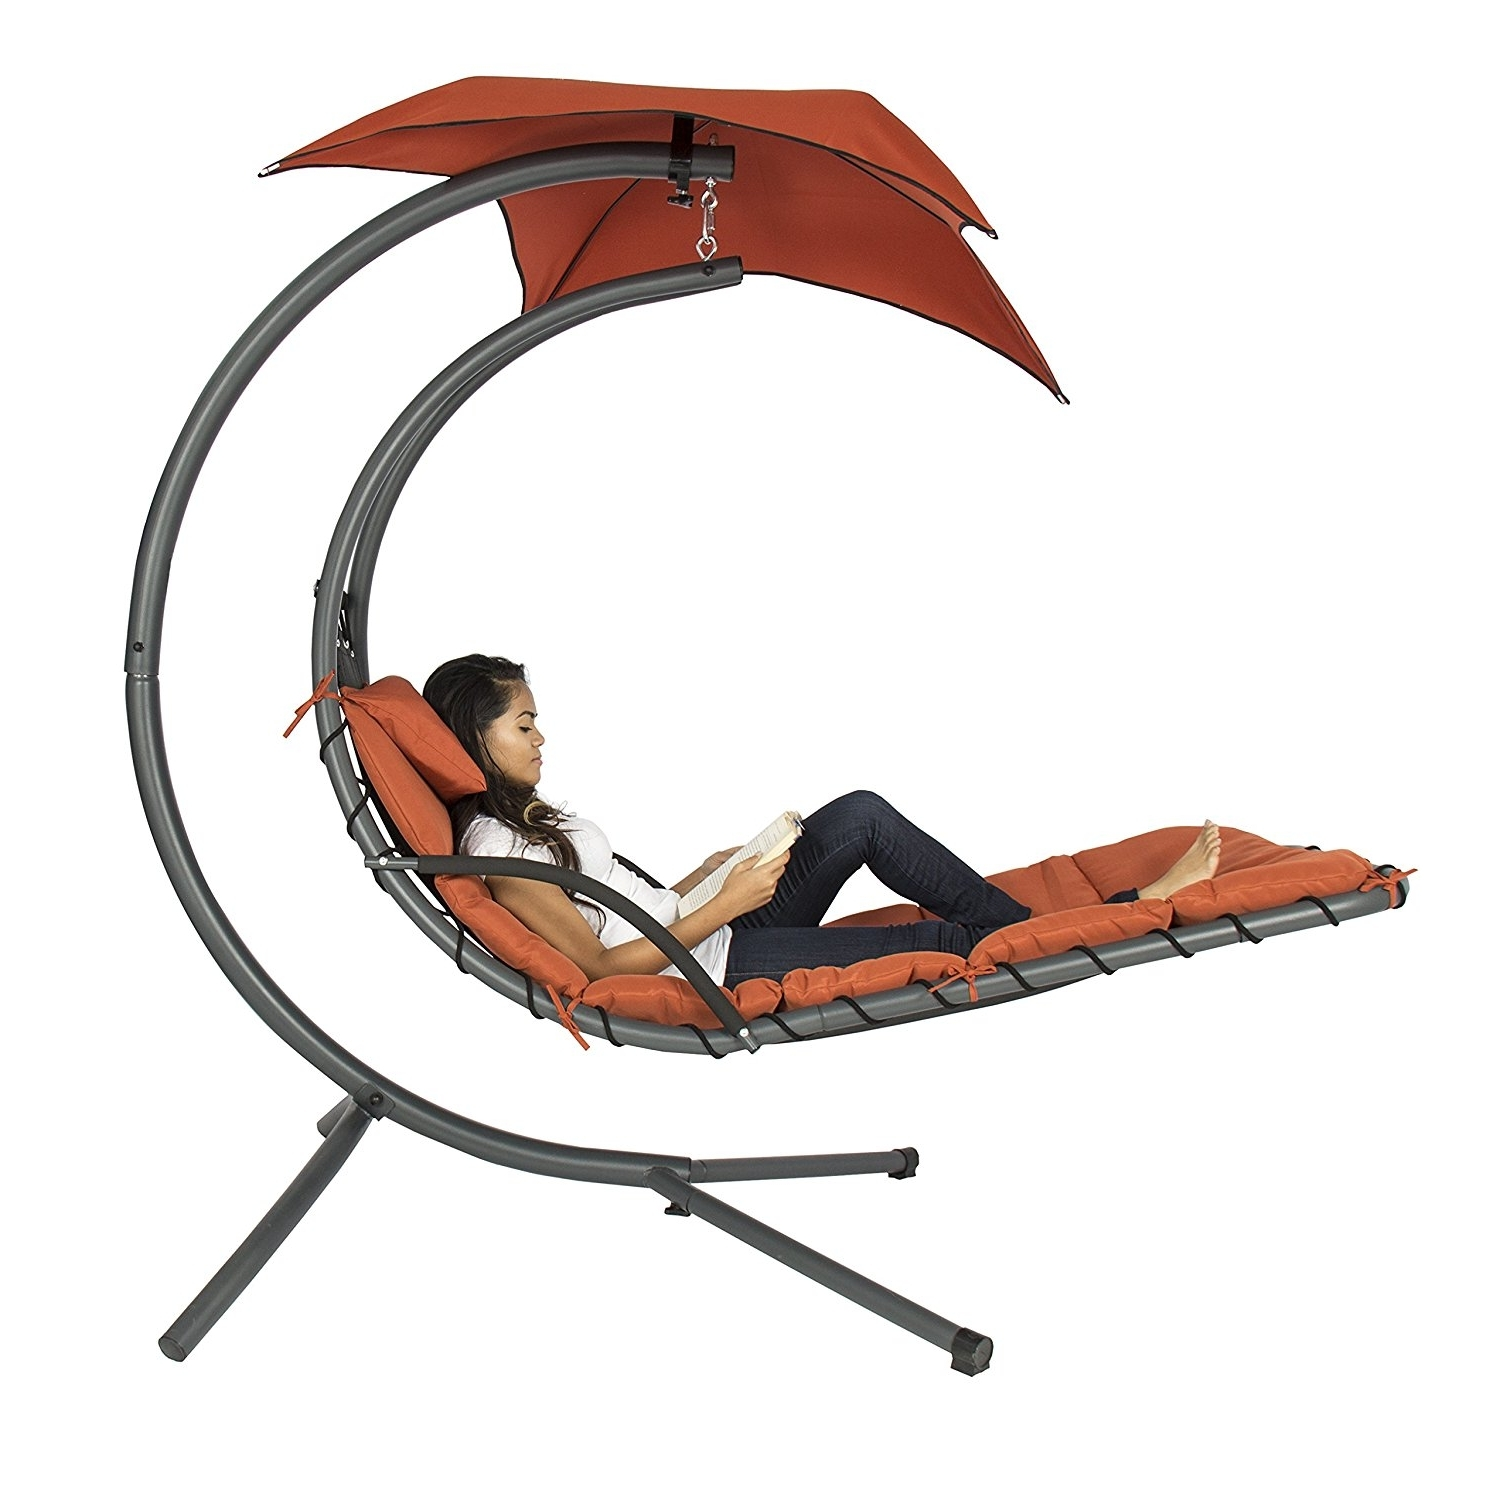 Amazon: Best Choice Products Hanging Chaise Lounger Chair Arc Pertaining To Latest Heavy Duty Chaise Lounge Chairs (View 3 of 15)